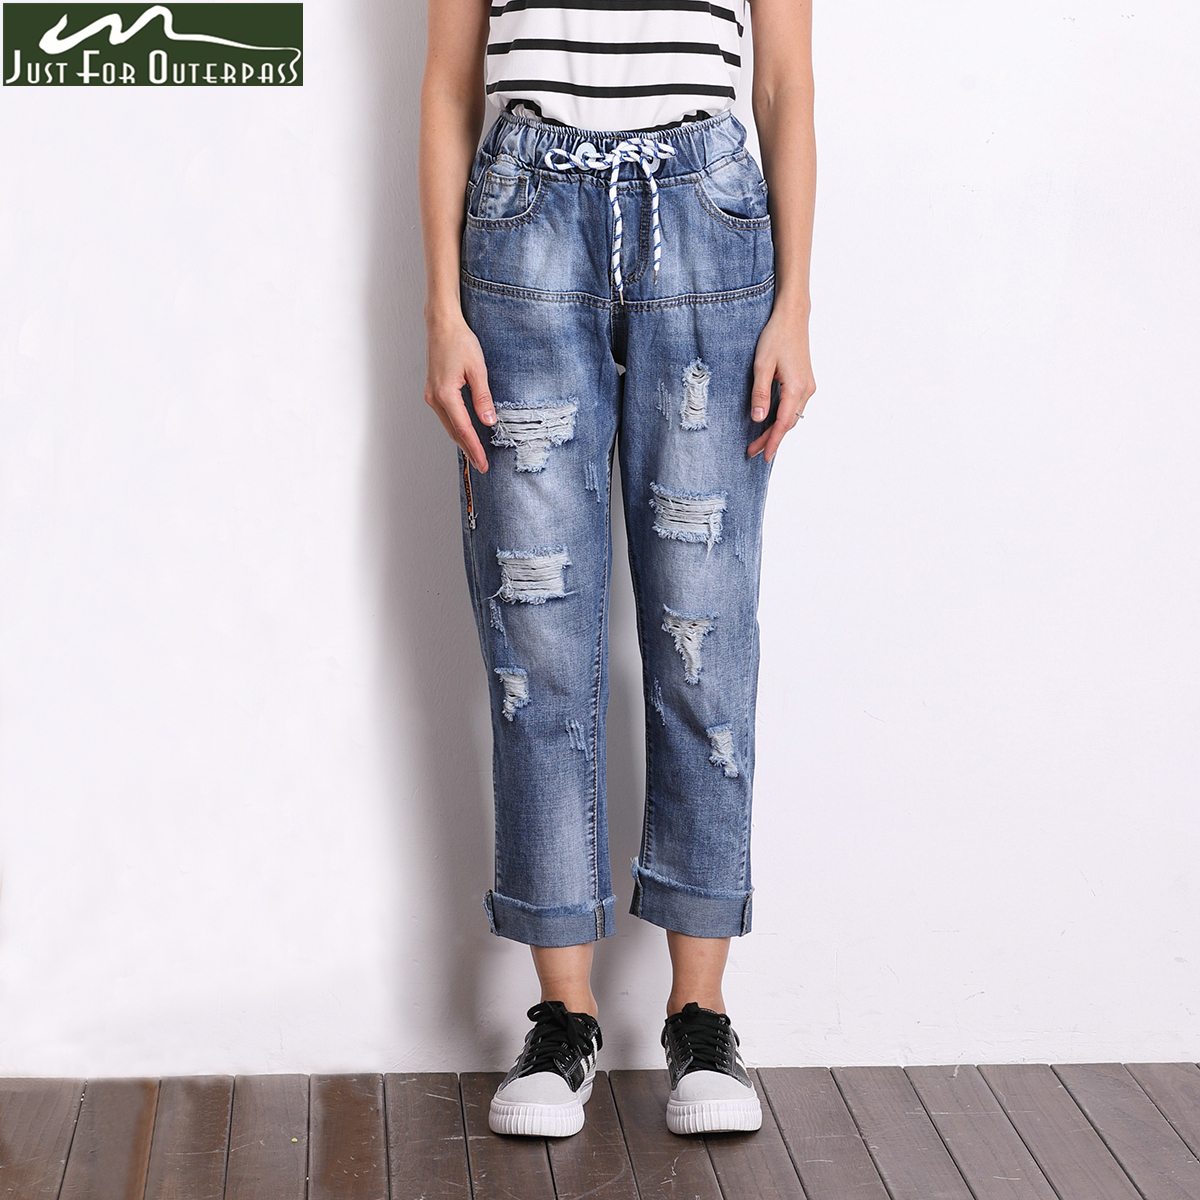 Online Get Cheap Justing Jeans -Aliexpress.com | Alibaba Group